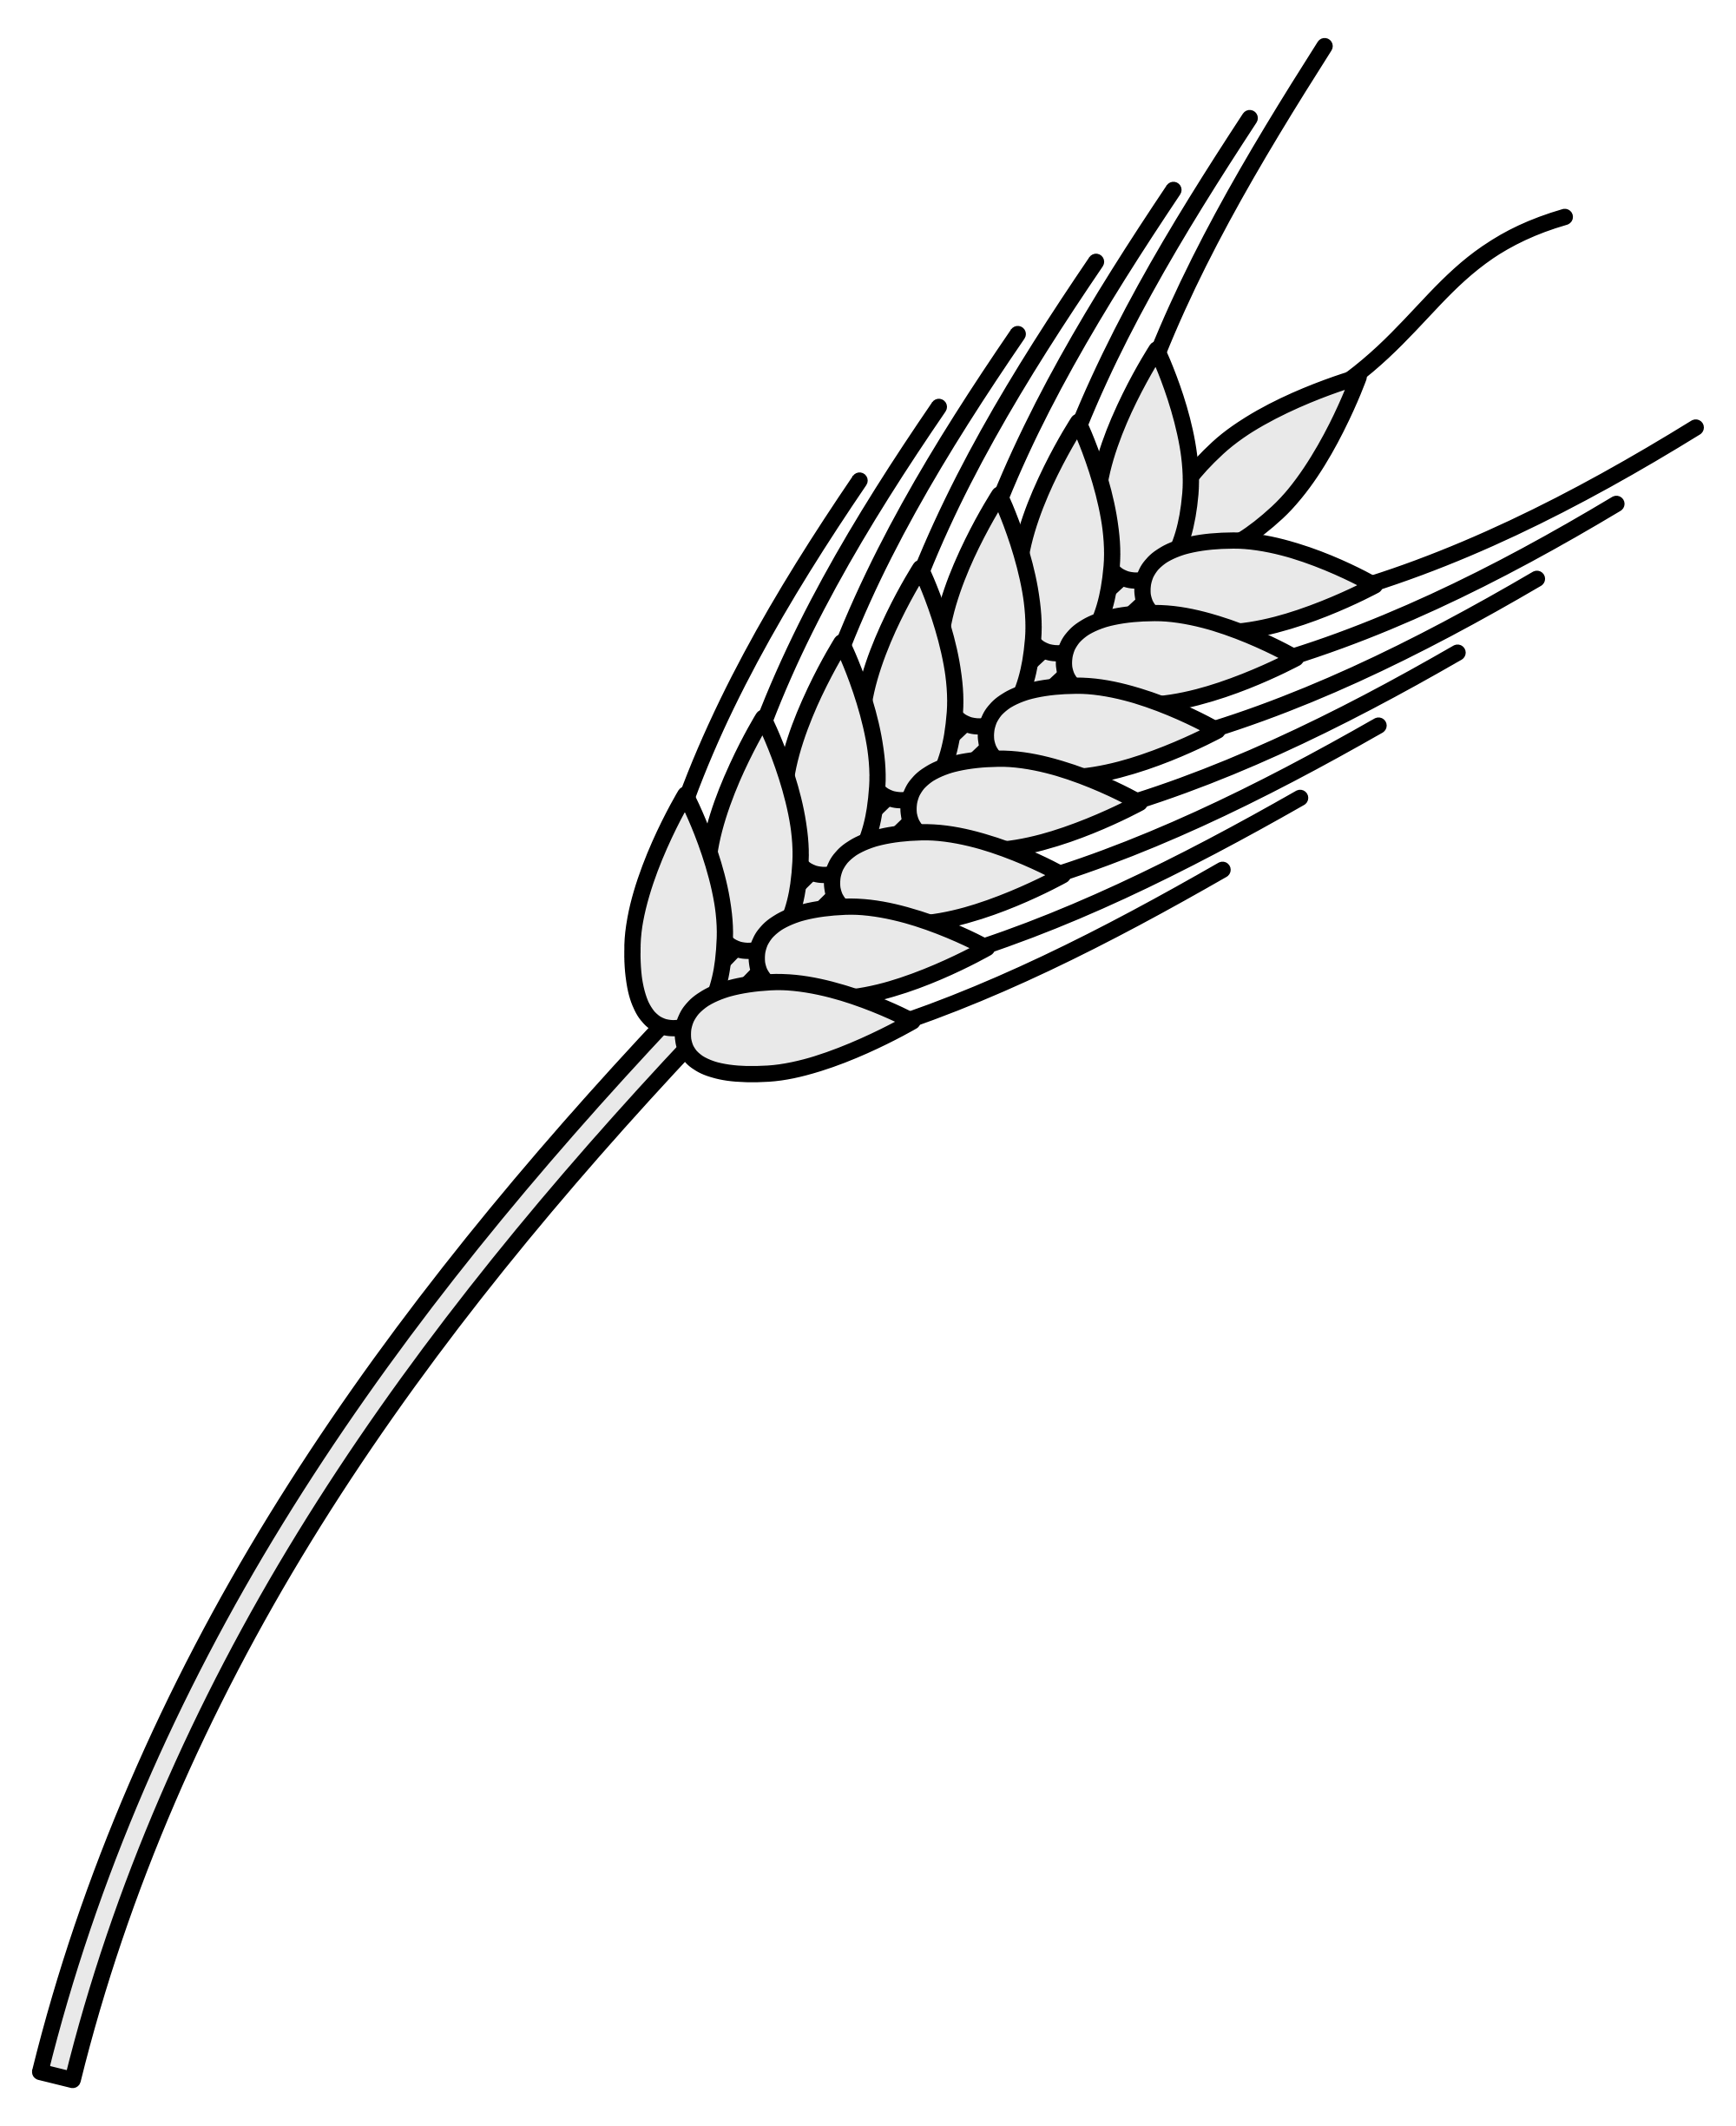 Wheat svg #16, Download drawings